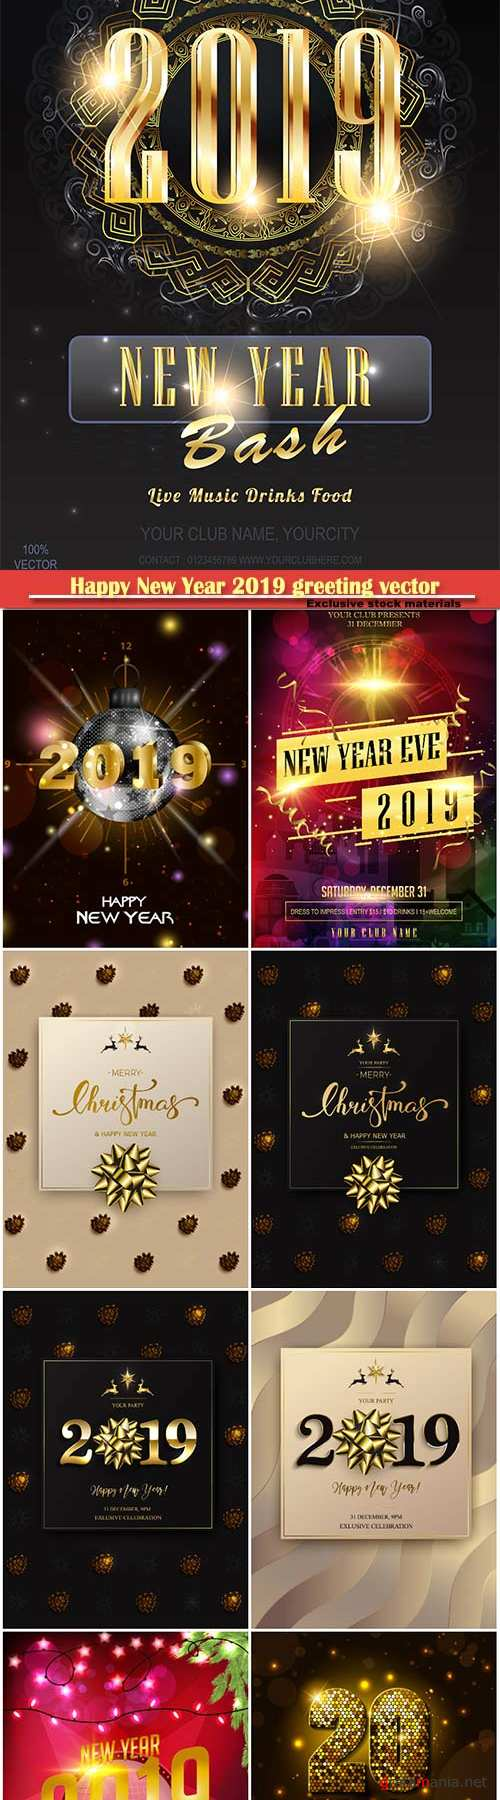 Happy New Year 2019 greeting vector background